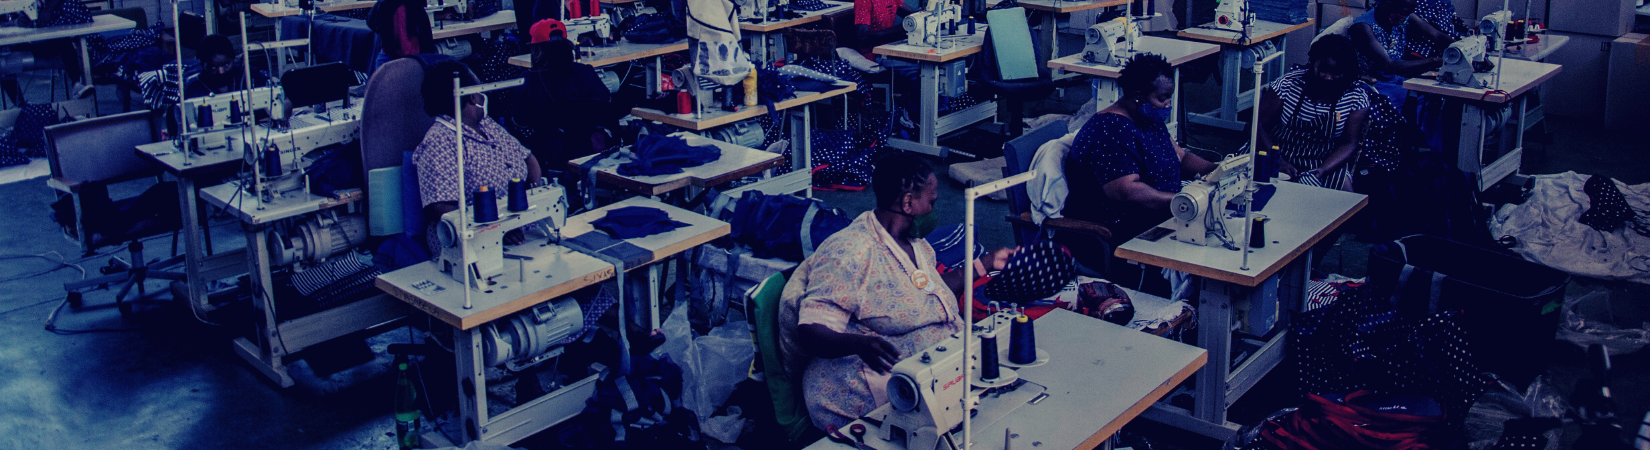 BLOG – Innovative Funding Solutions Lead to Inclusive Economic Growth, ProfitShare Partners